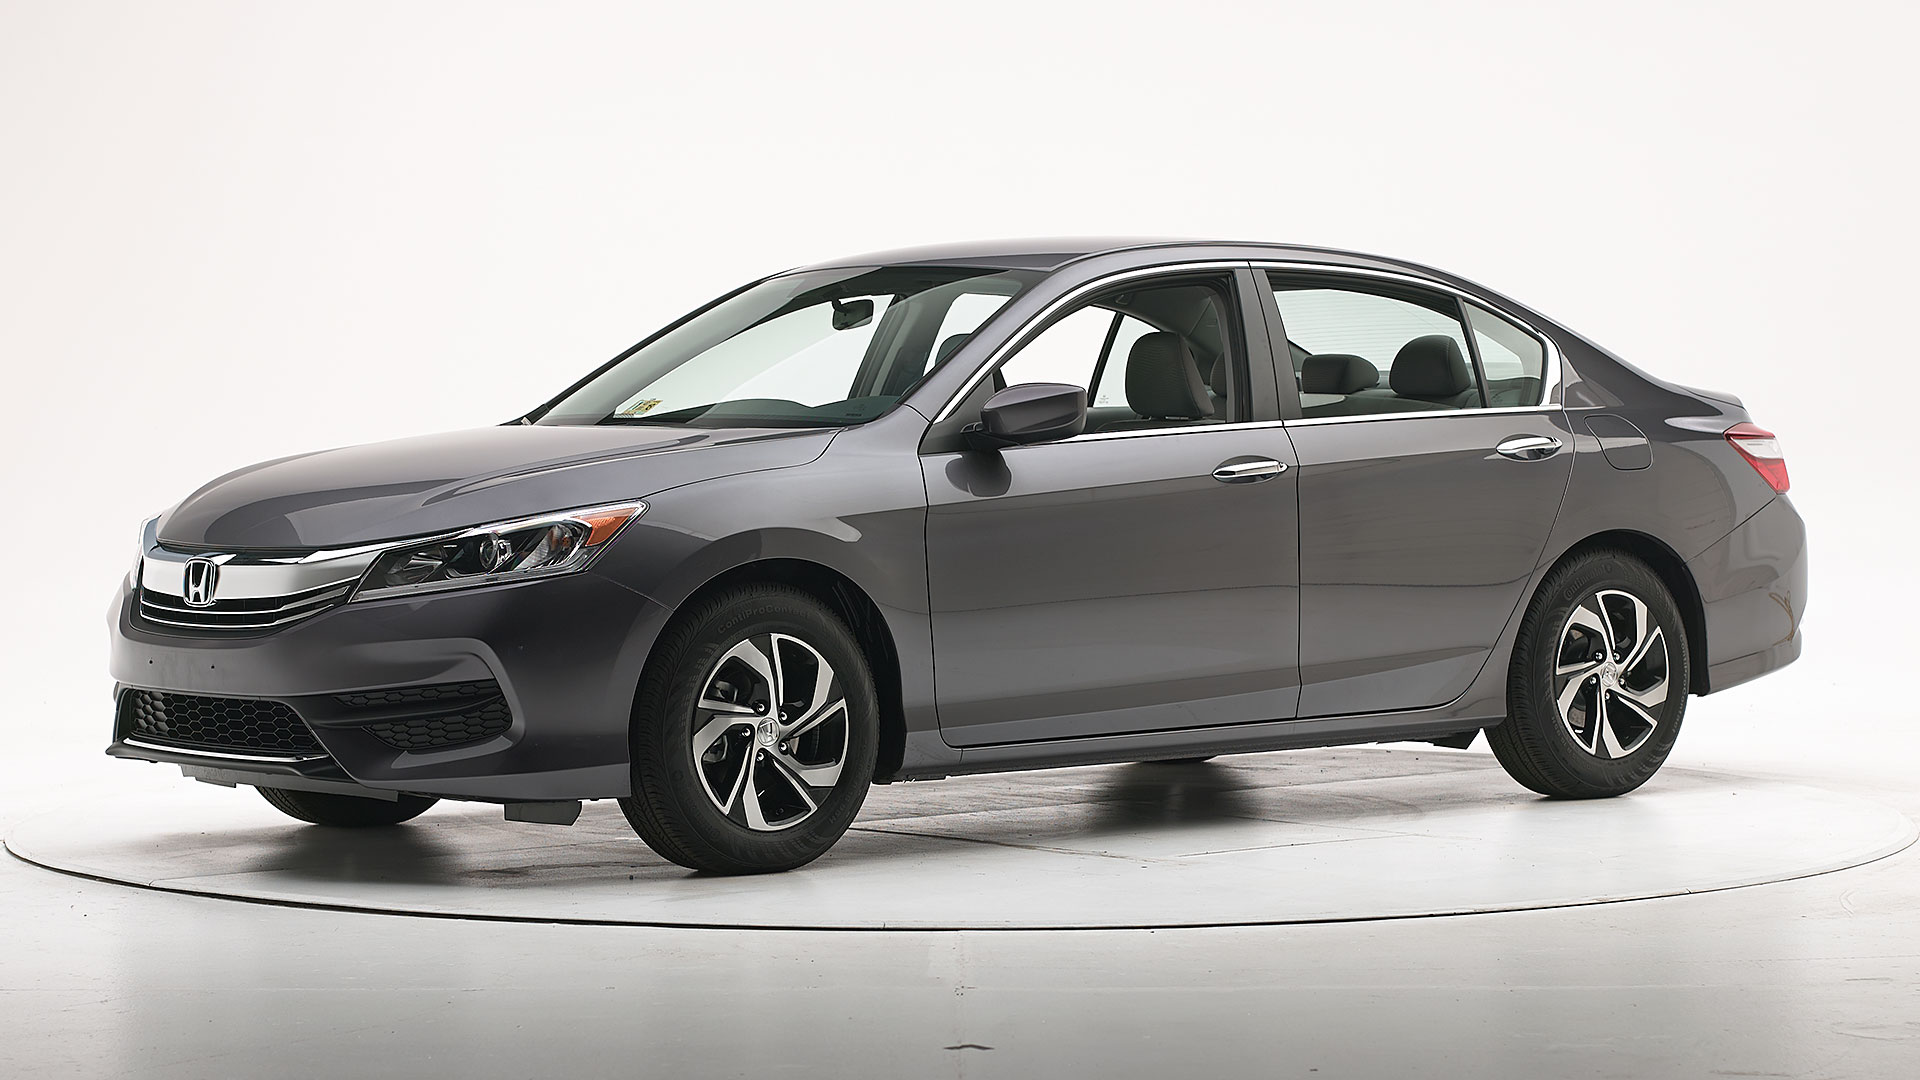 2017 Honda Accord 4-door sedan